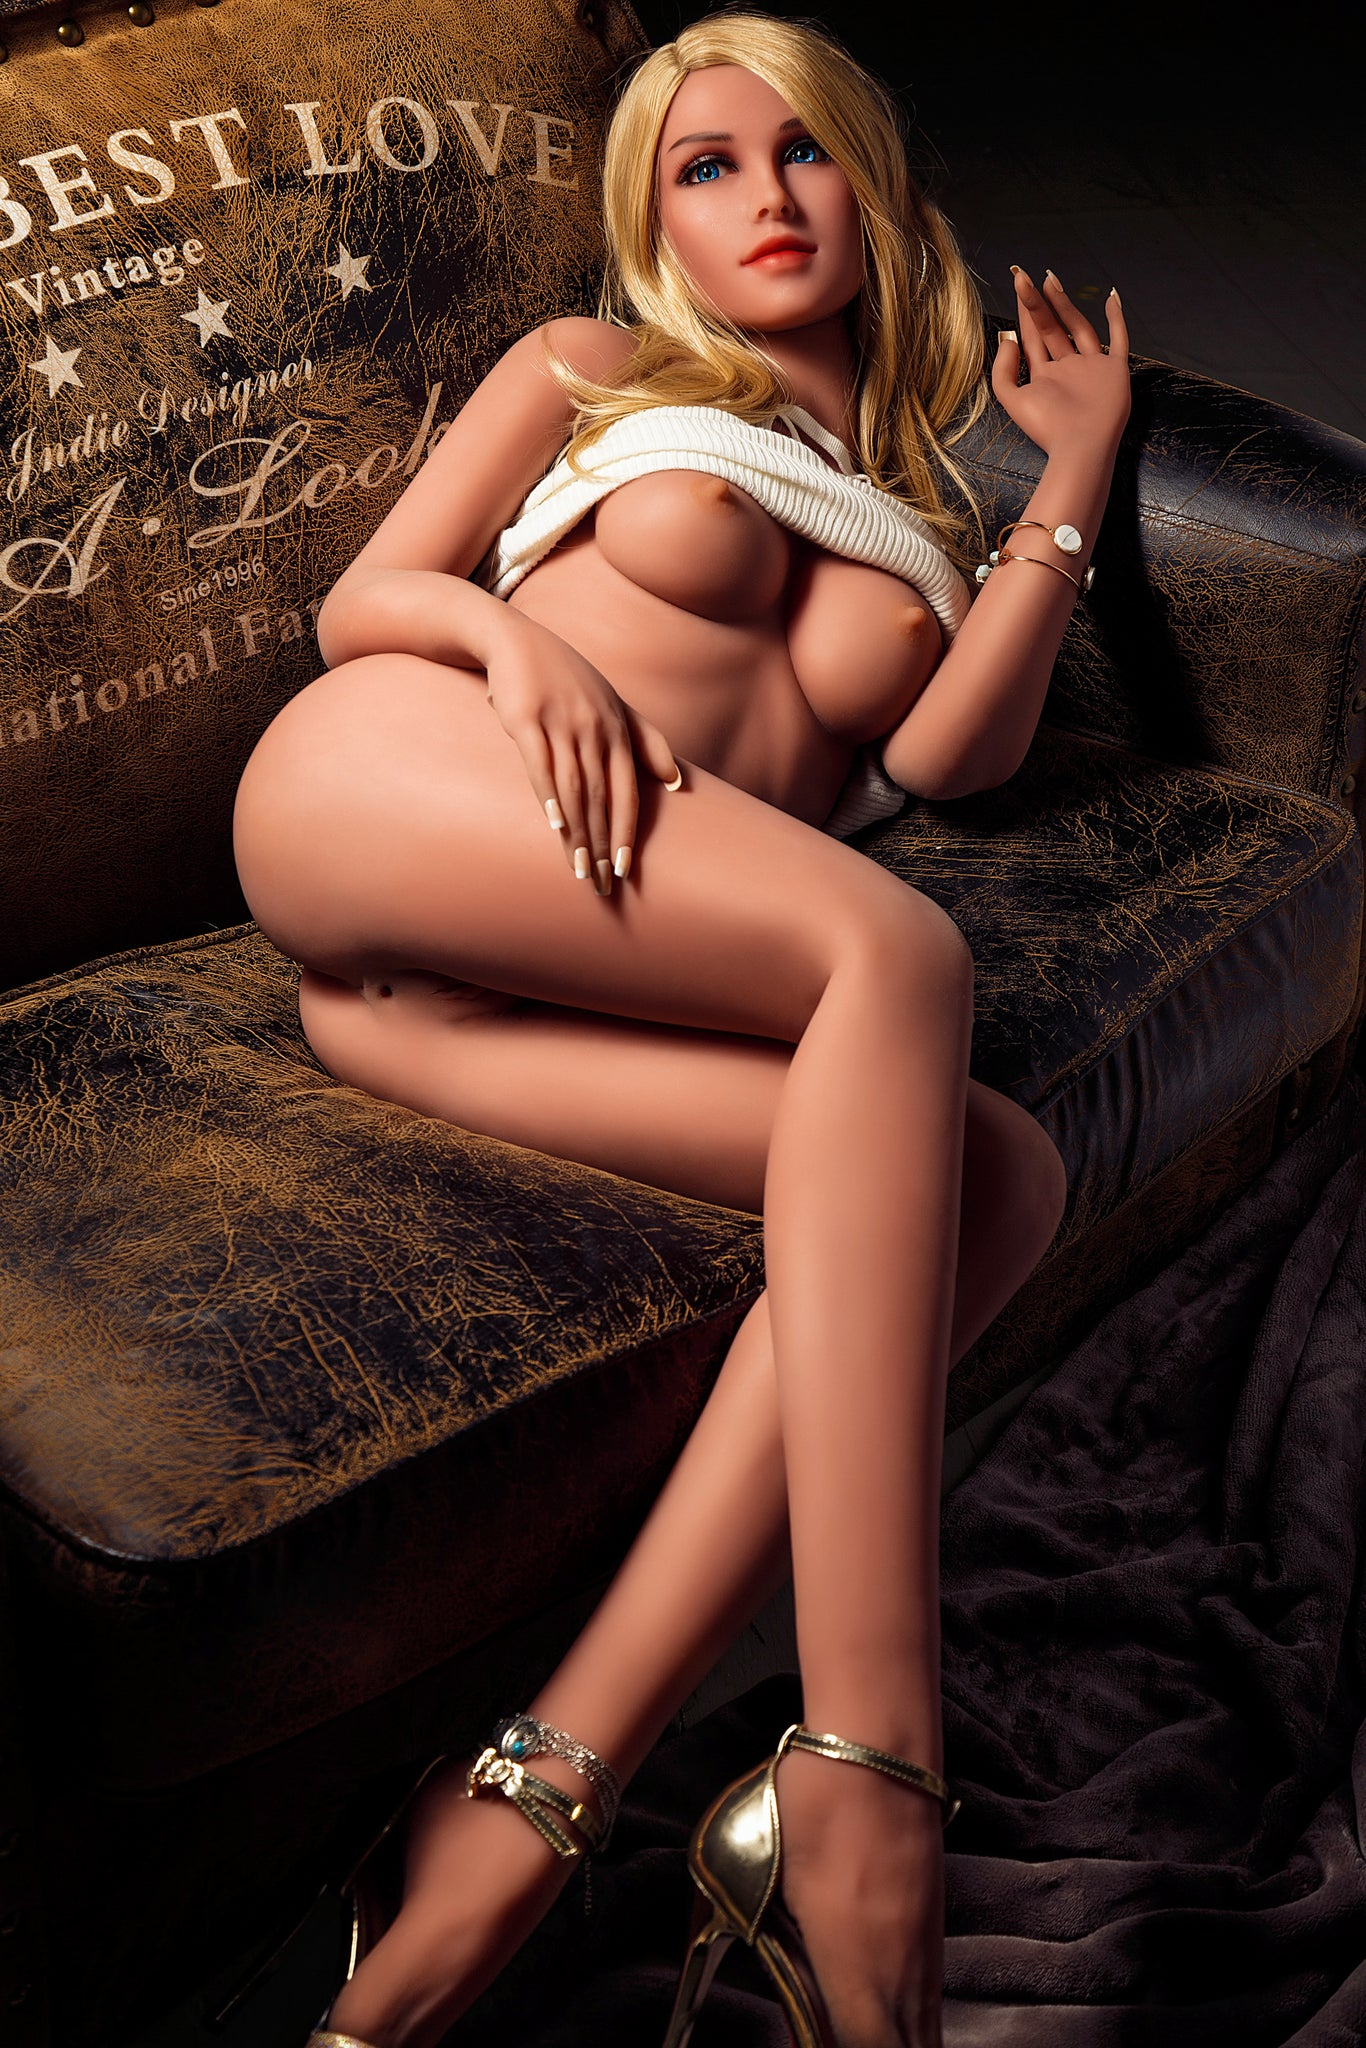 Sex Doll Arizona-5ft2in (158cm) Non-Branded